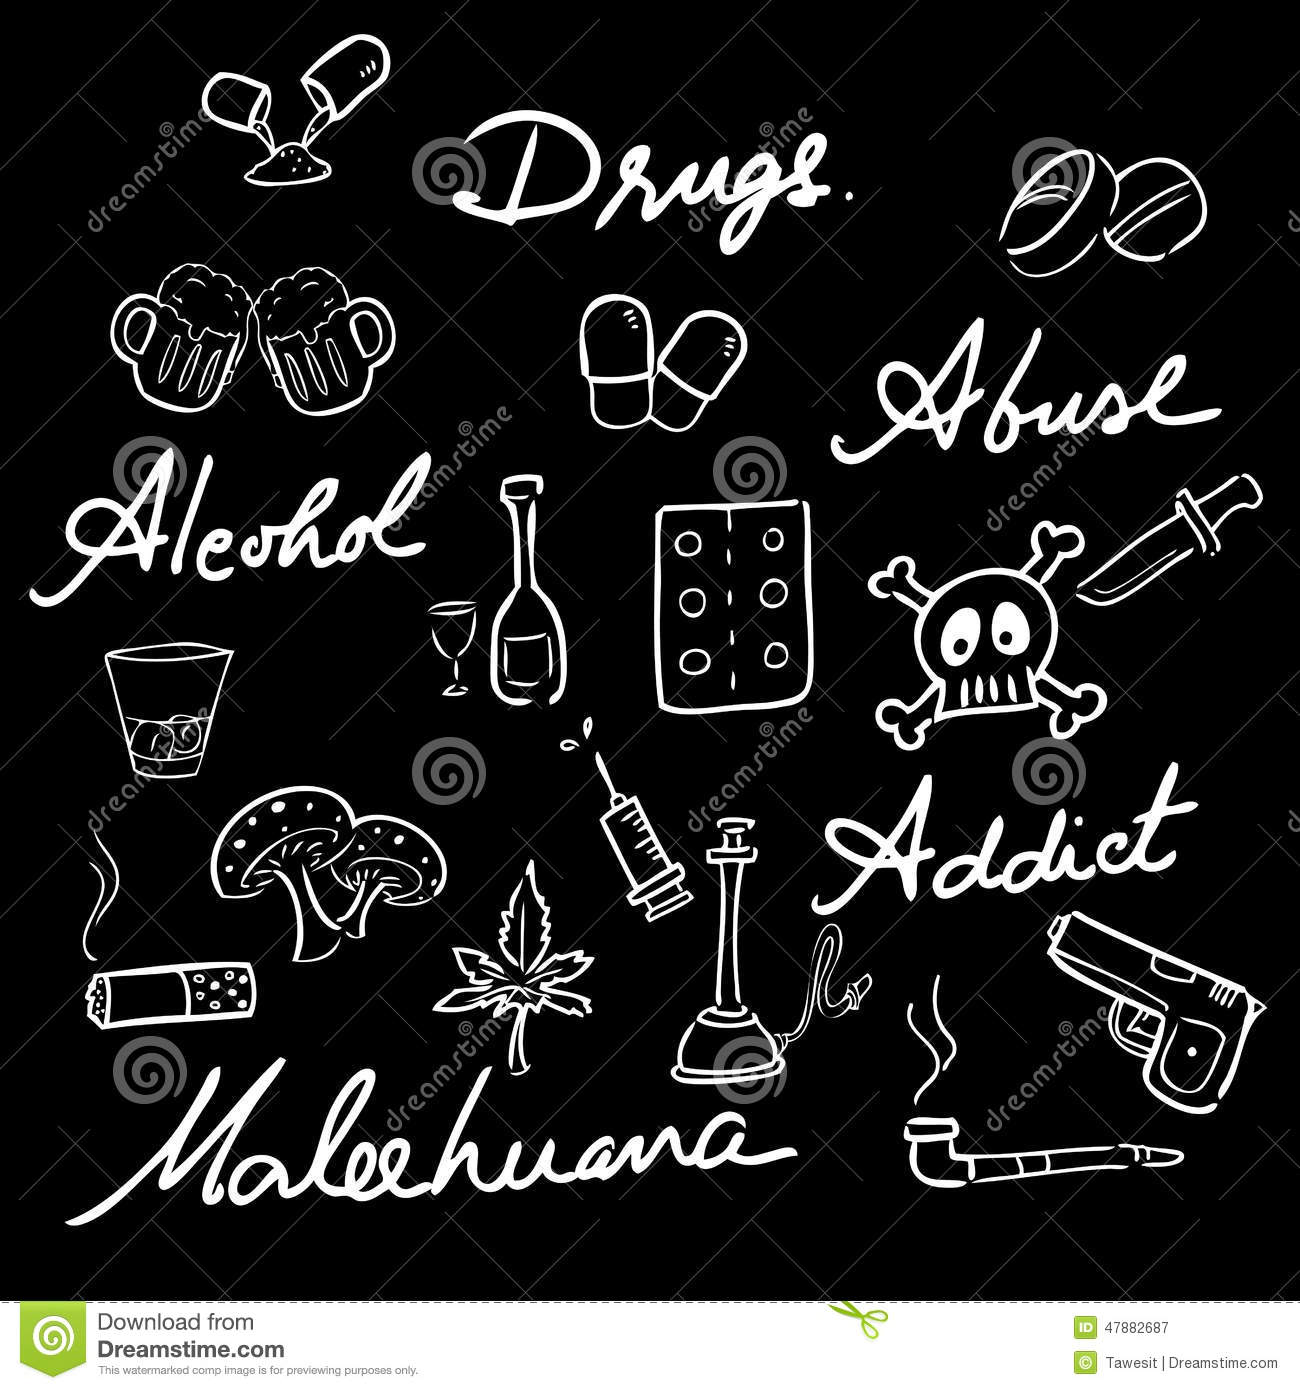 Drug Abuse Addict Icons Set Words Stock Vector - Image: 47882687